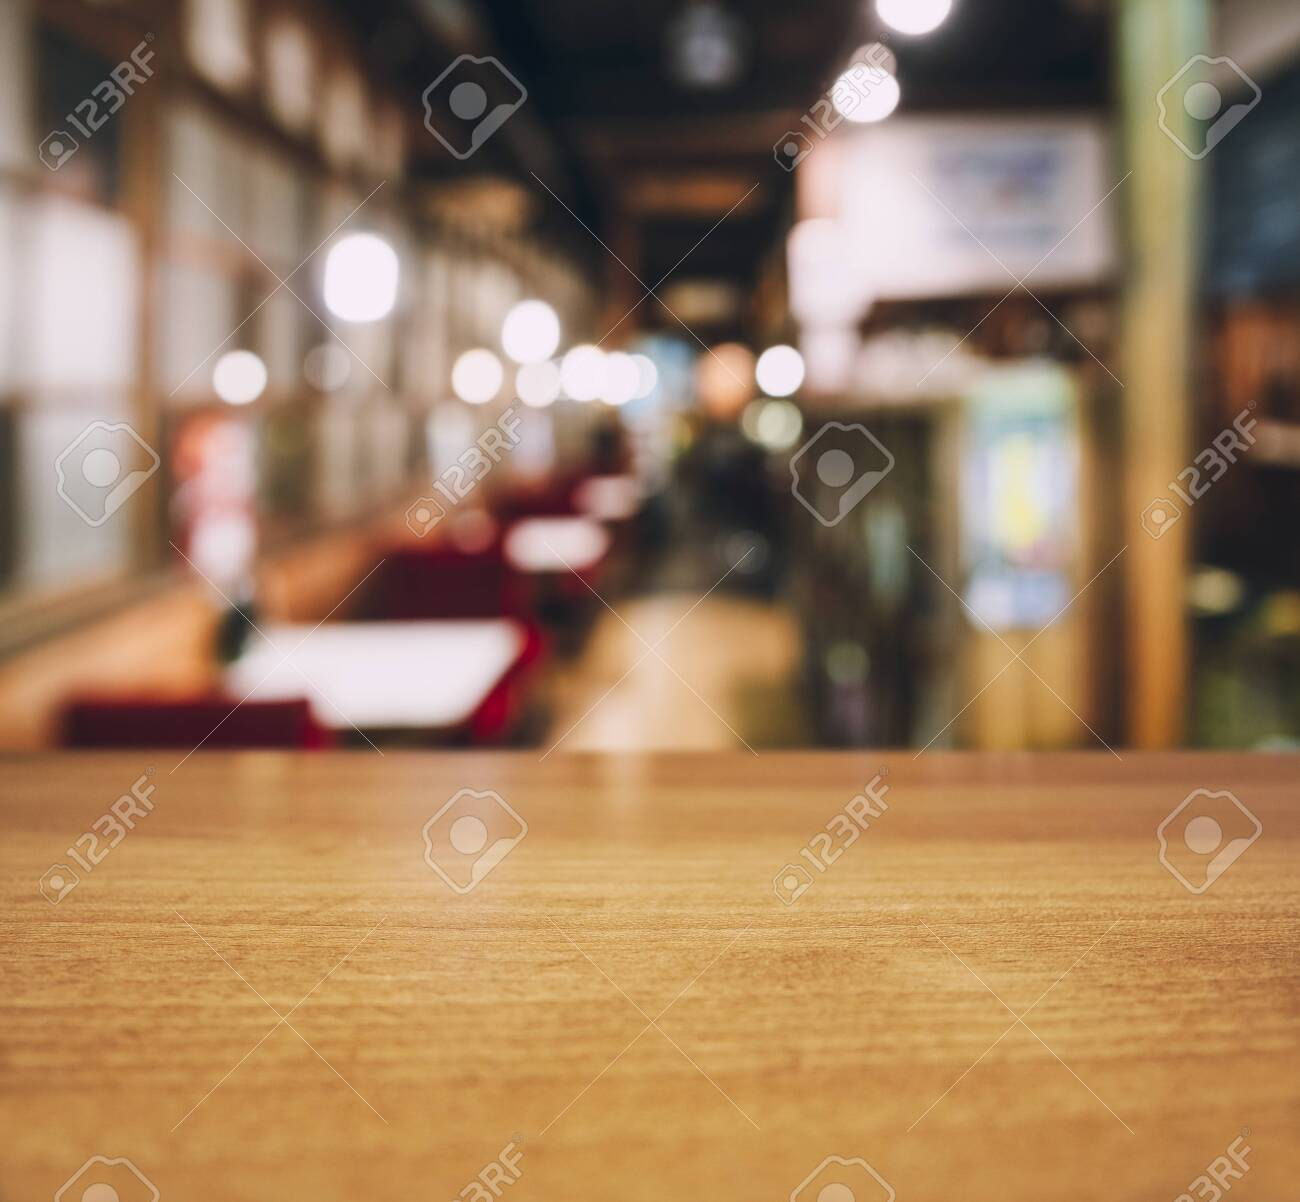 Table top wooden counter Blur Cafe restaurant seats interior background - 147726573